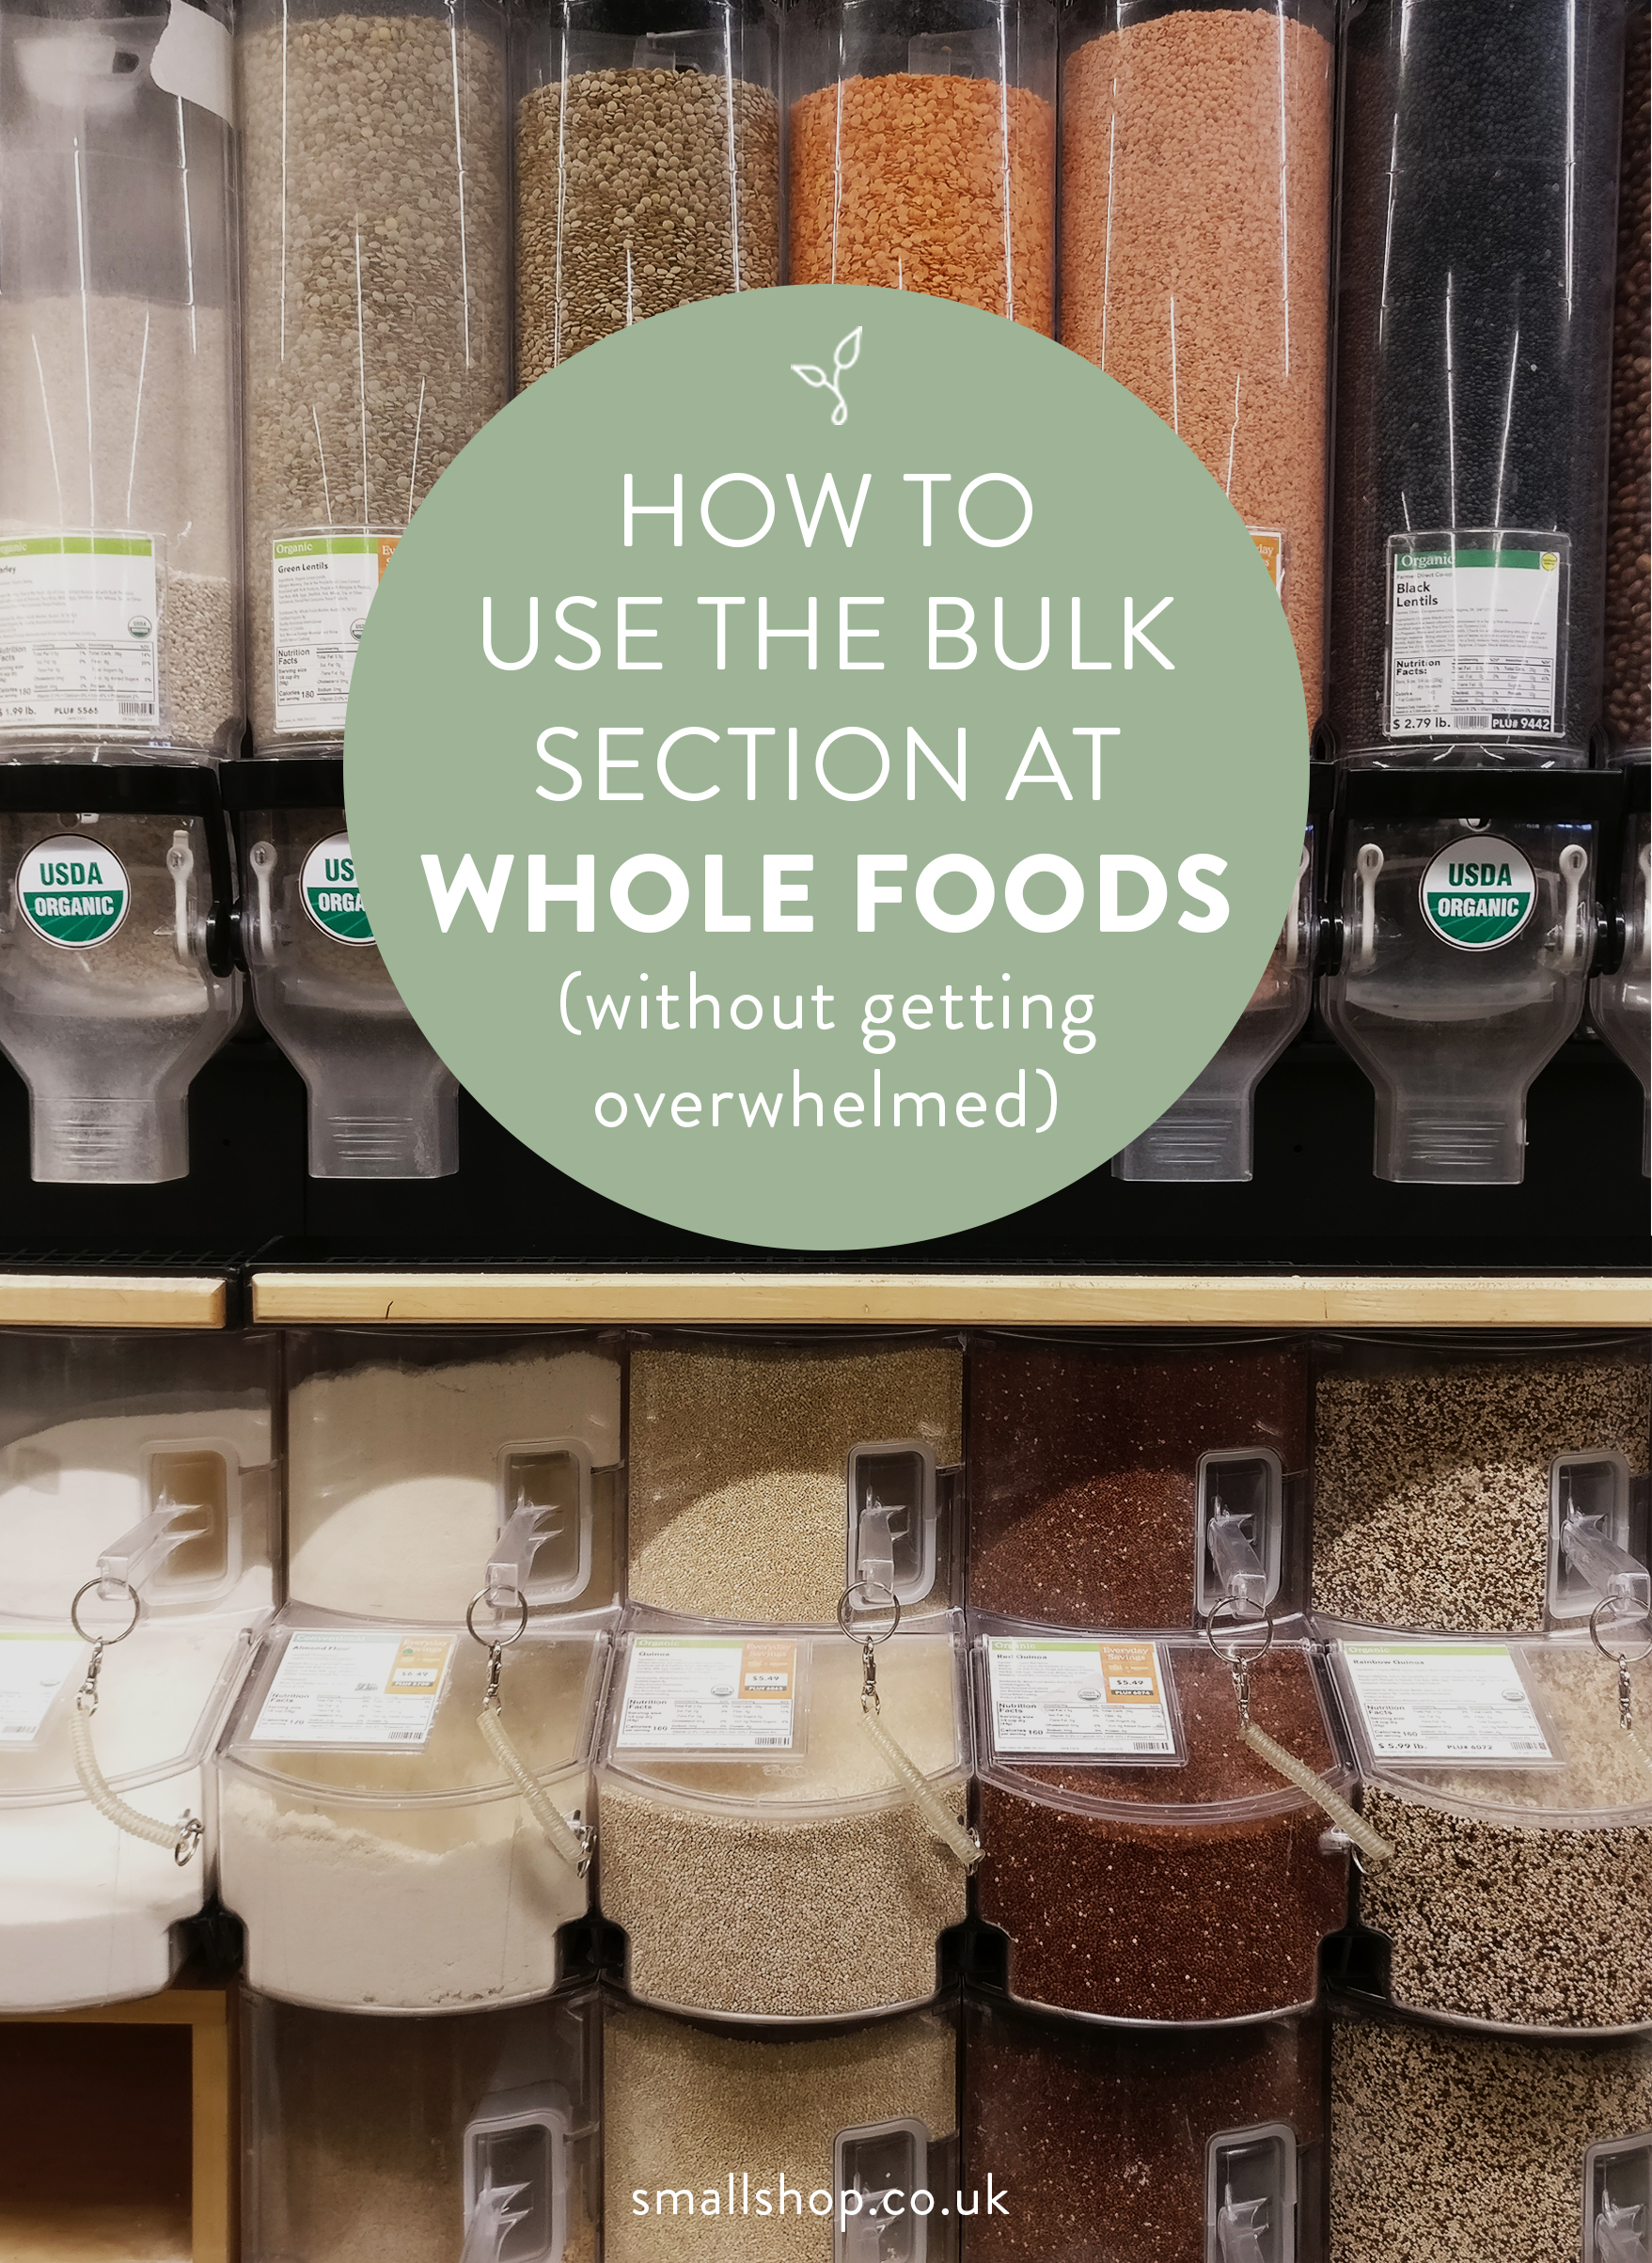 How to use the bulk section at Whole Foods (without getting intimidated)